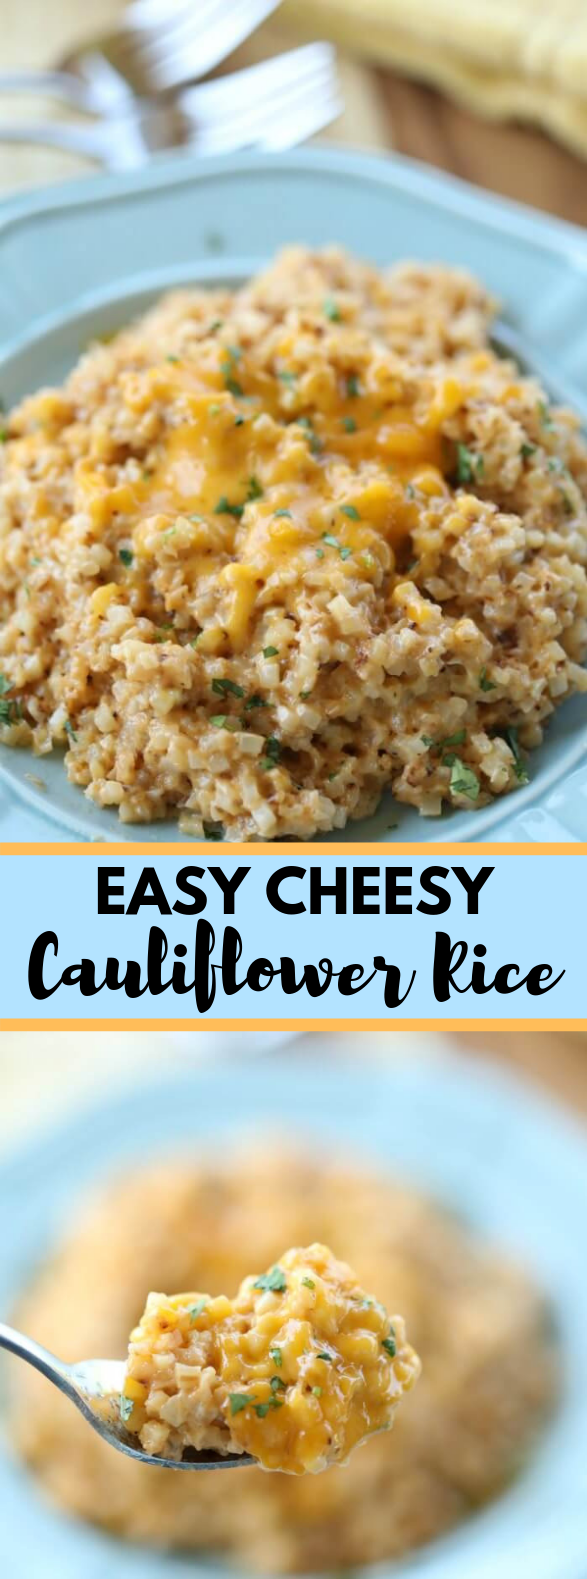 EASY CHEESY CAULIFLOWER RICE RECIPE #ketorecipe #easy